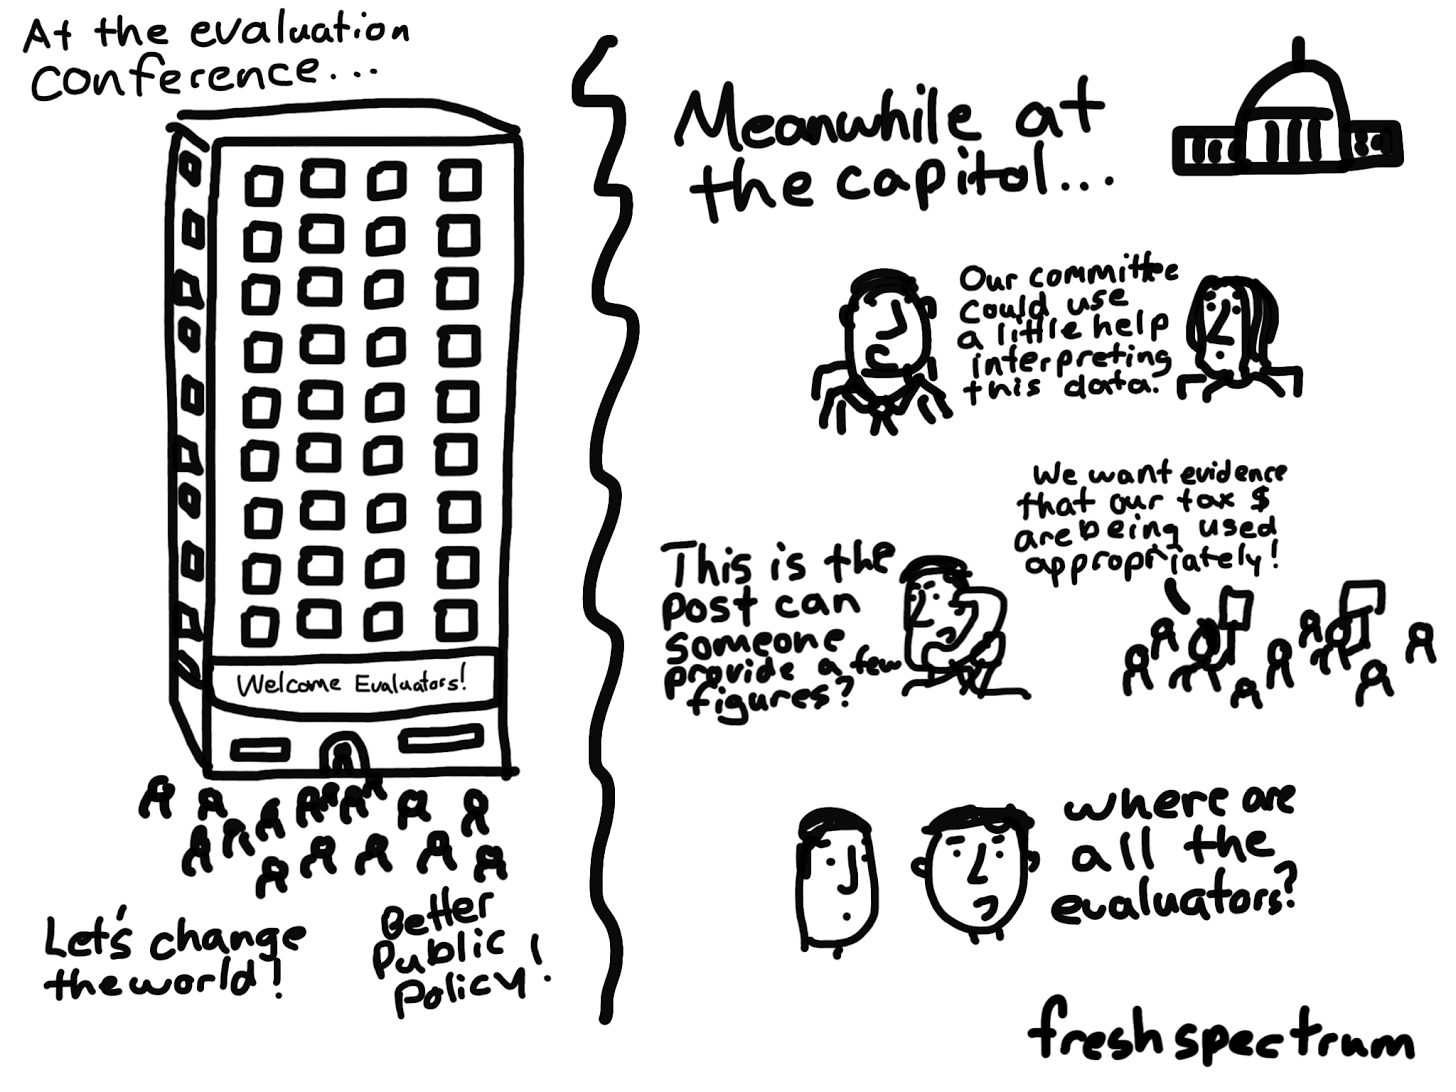 Cartoon-At the evaluation conference....meanwhile at the capitol where are the evaluators.